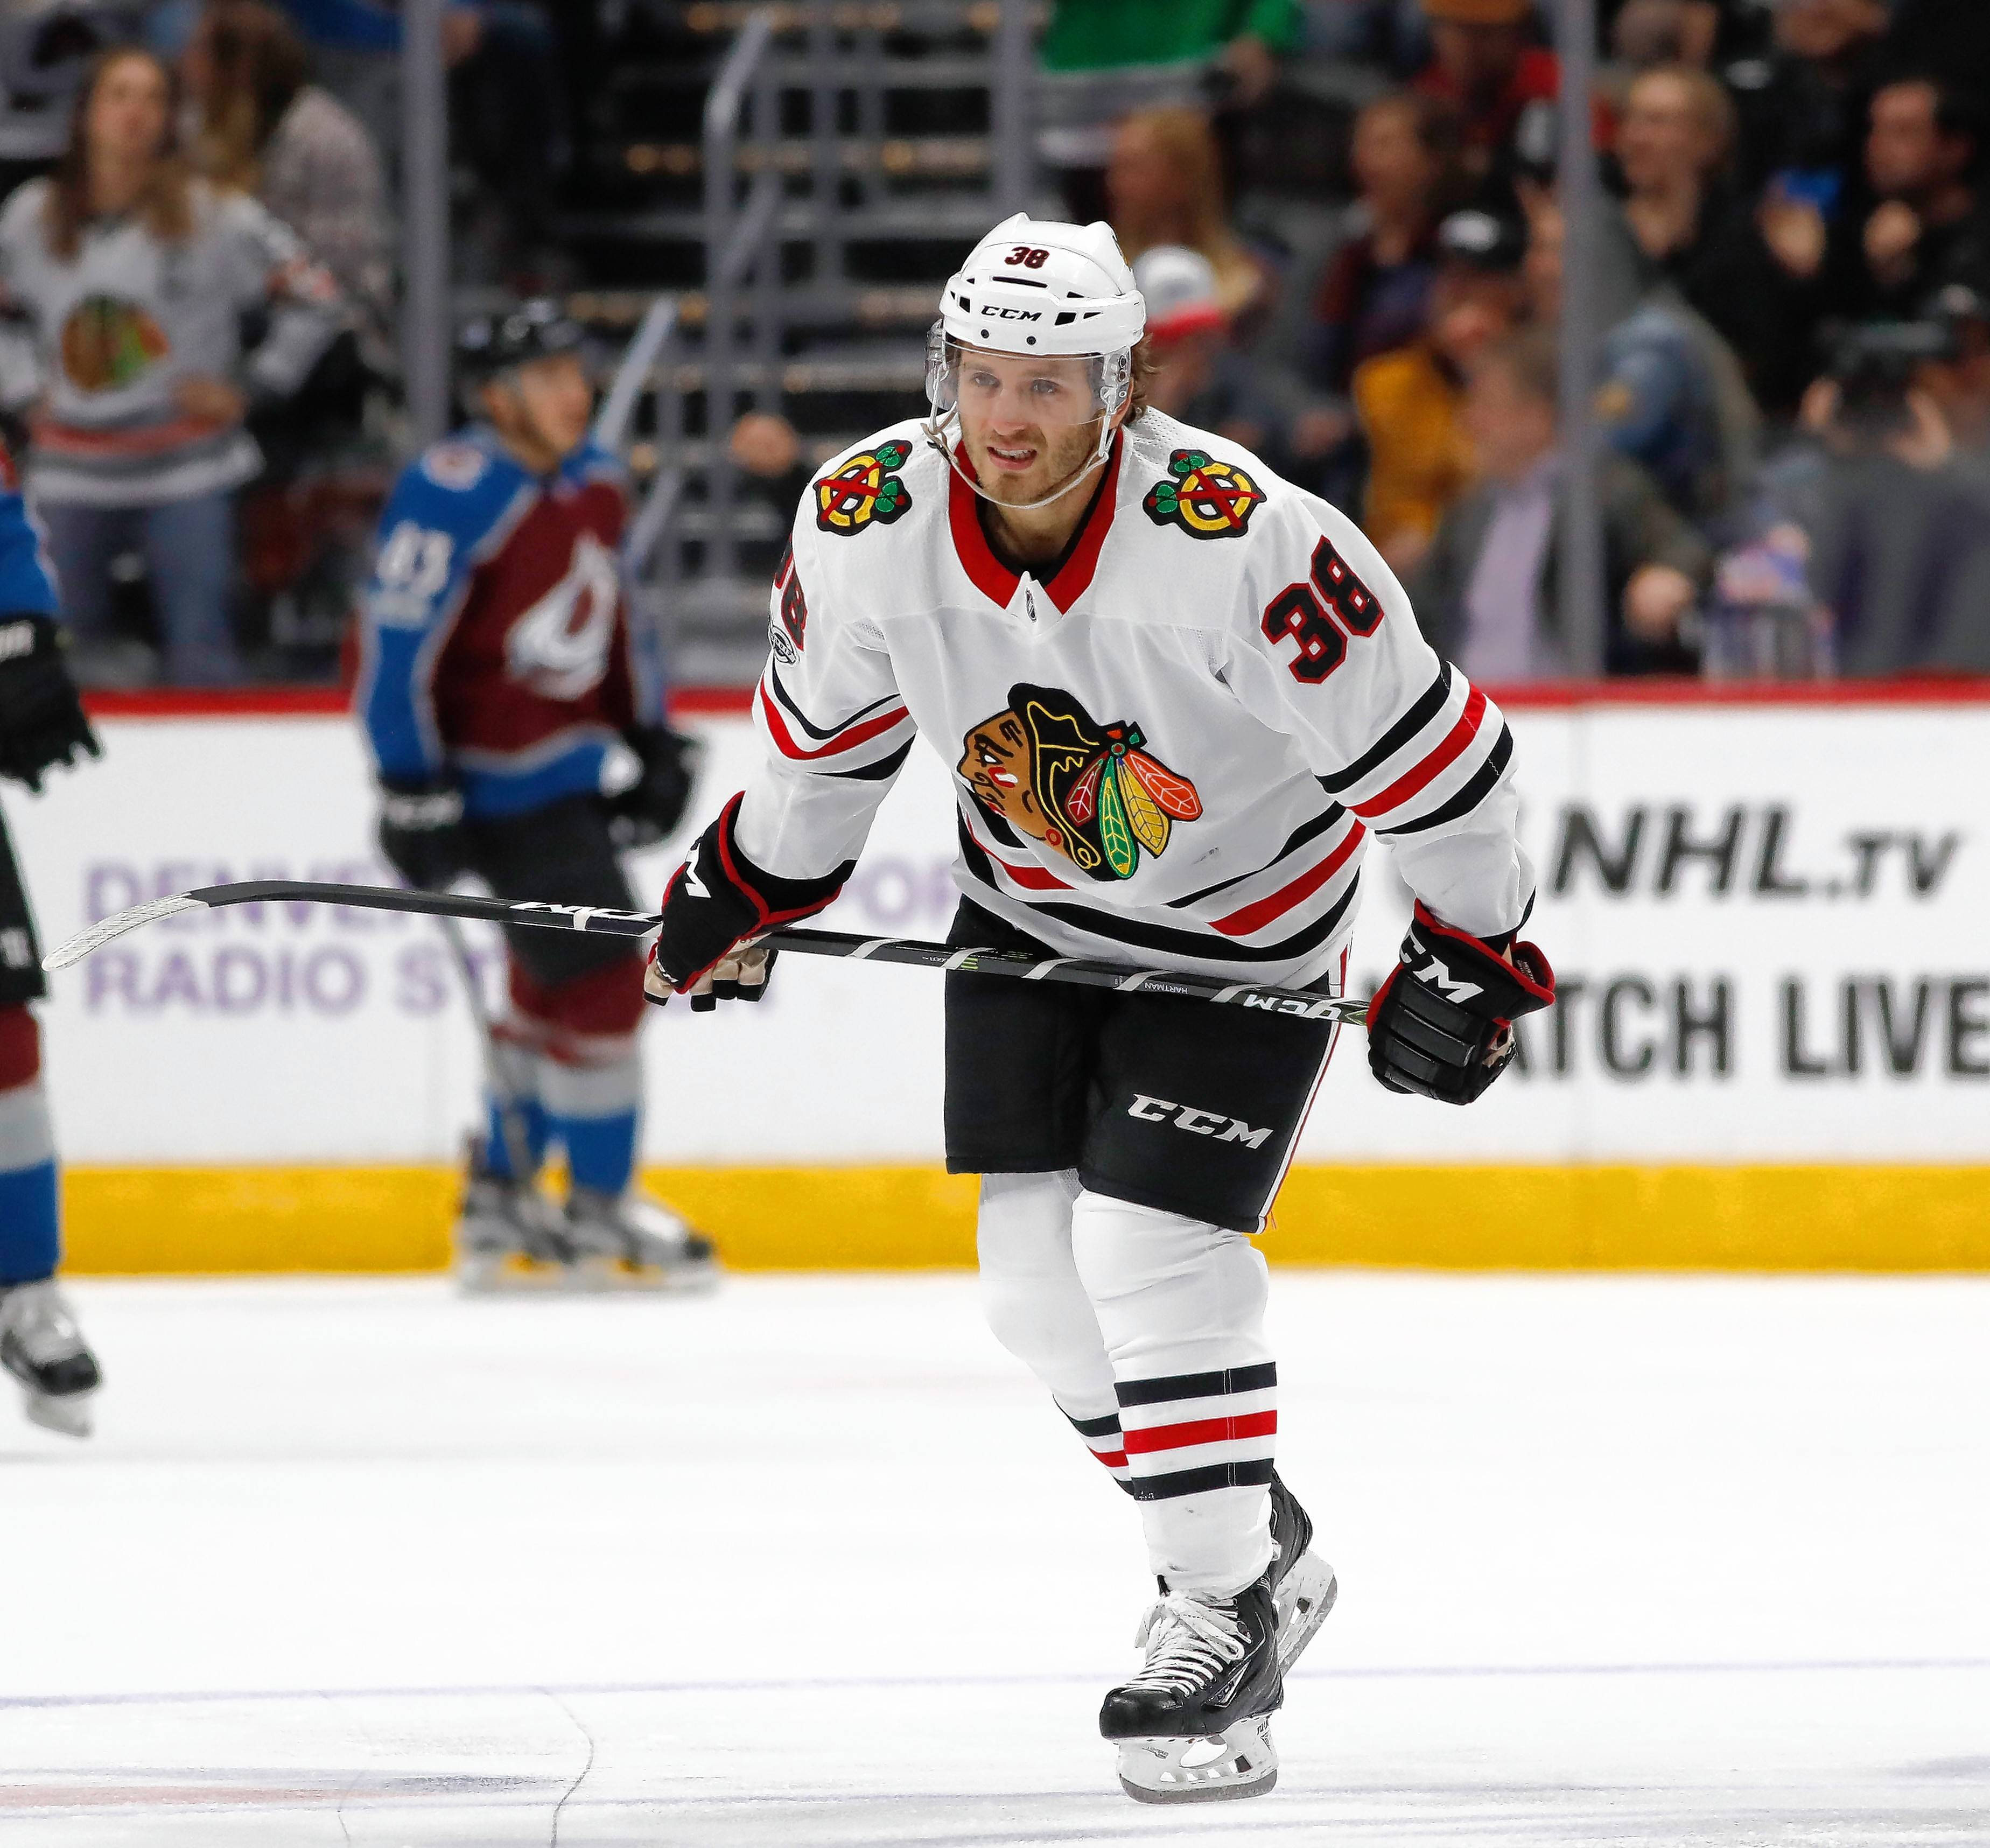 Ryan Hartman's sophomore season in the NHL got off to an epic start, but Chicago Blackhawks coach Joel Quenneville made his struggling winger a healthy scratch Sunday against New Jersey. Hartman came back strong the next game, however, and opened his coach's eyes centering the team's third line.